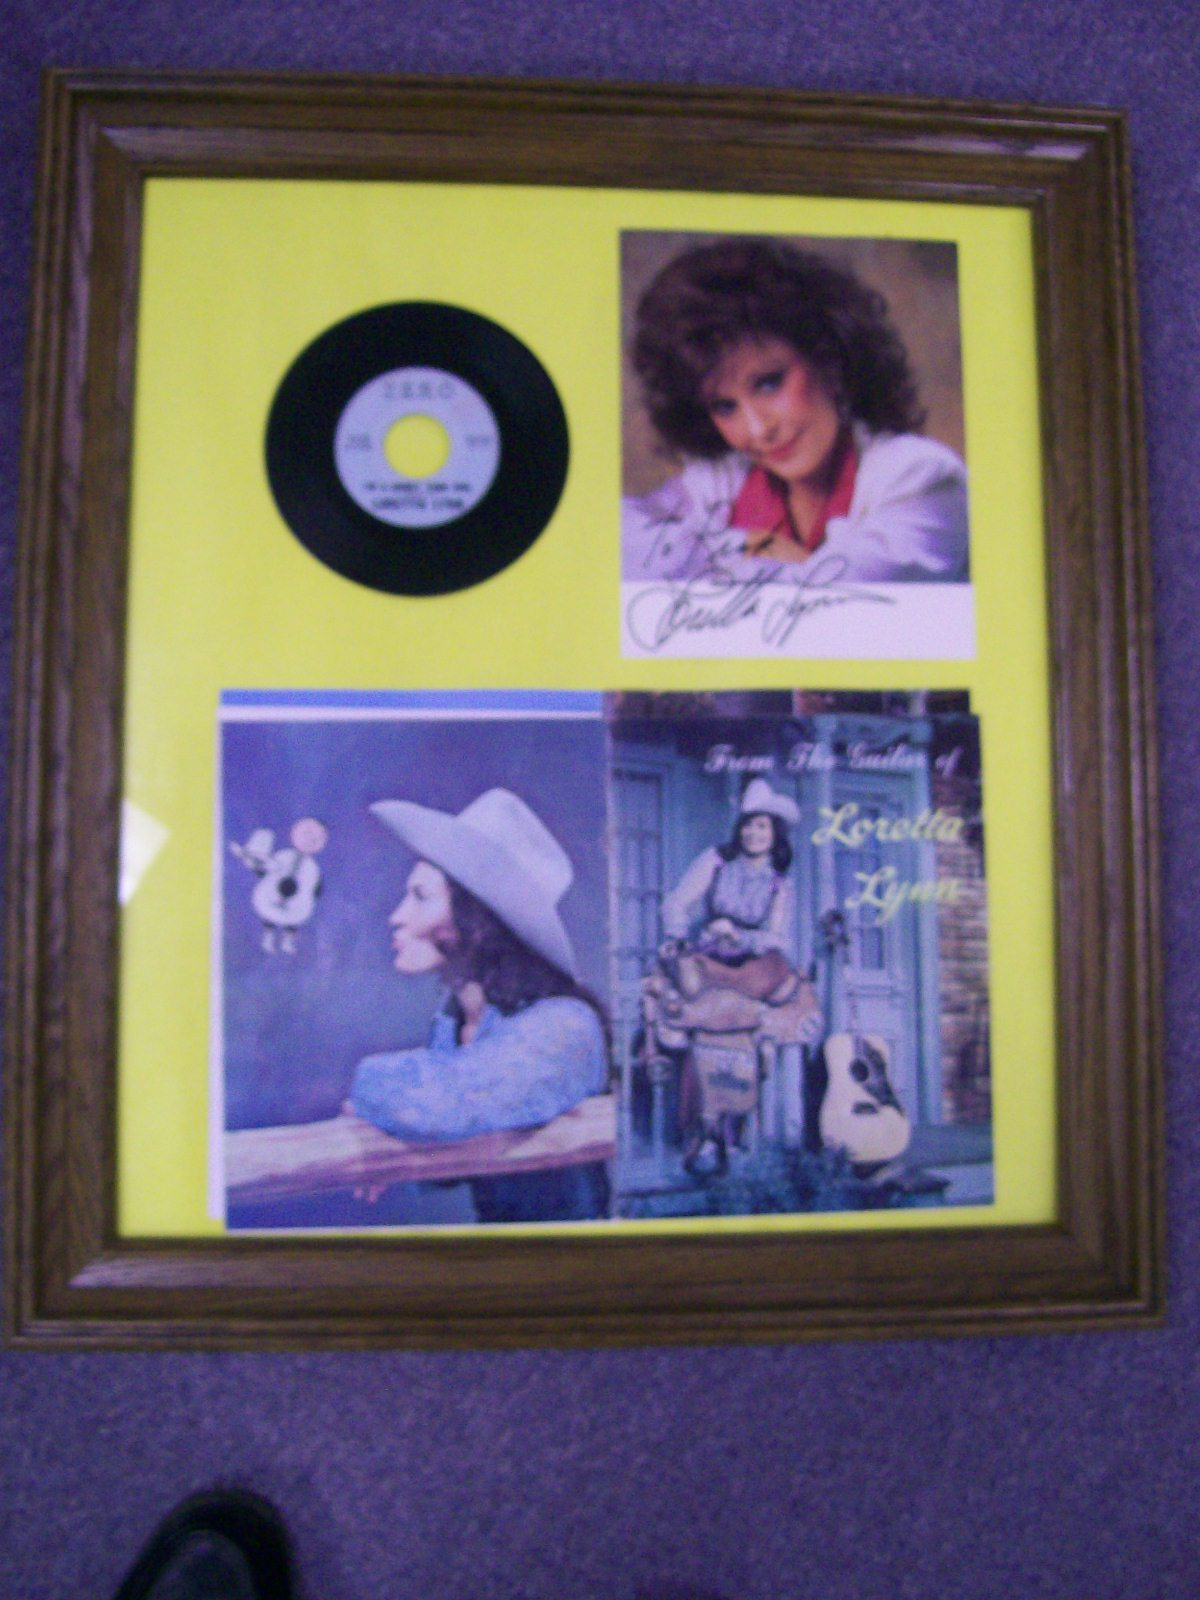 Loretta Lynn Framed Array Of Her First Record on Zero Label